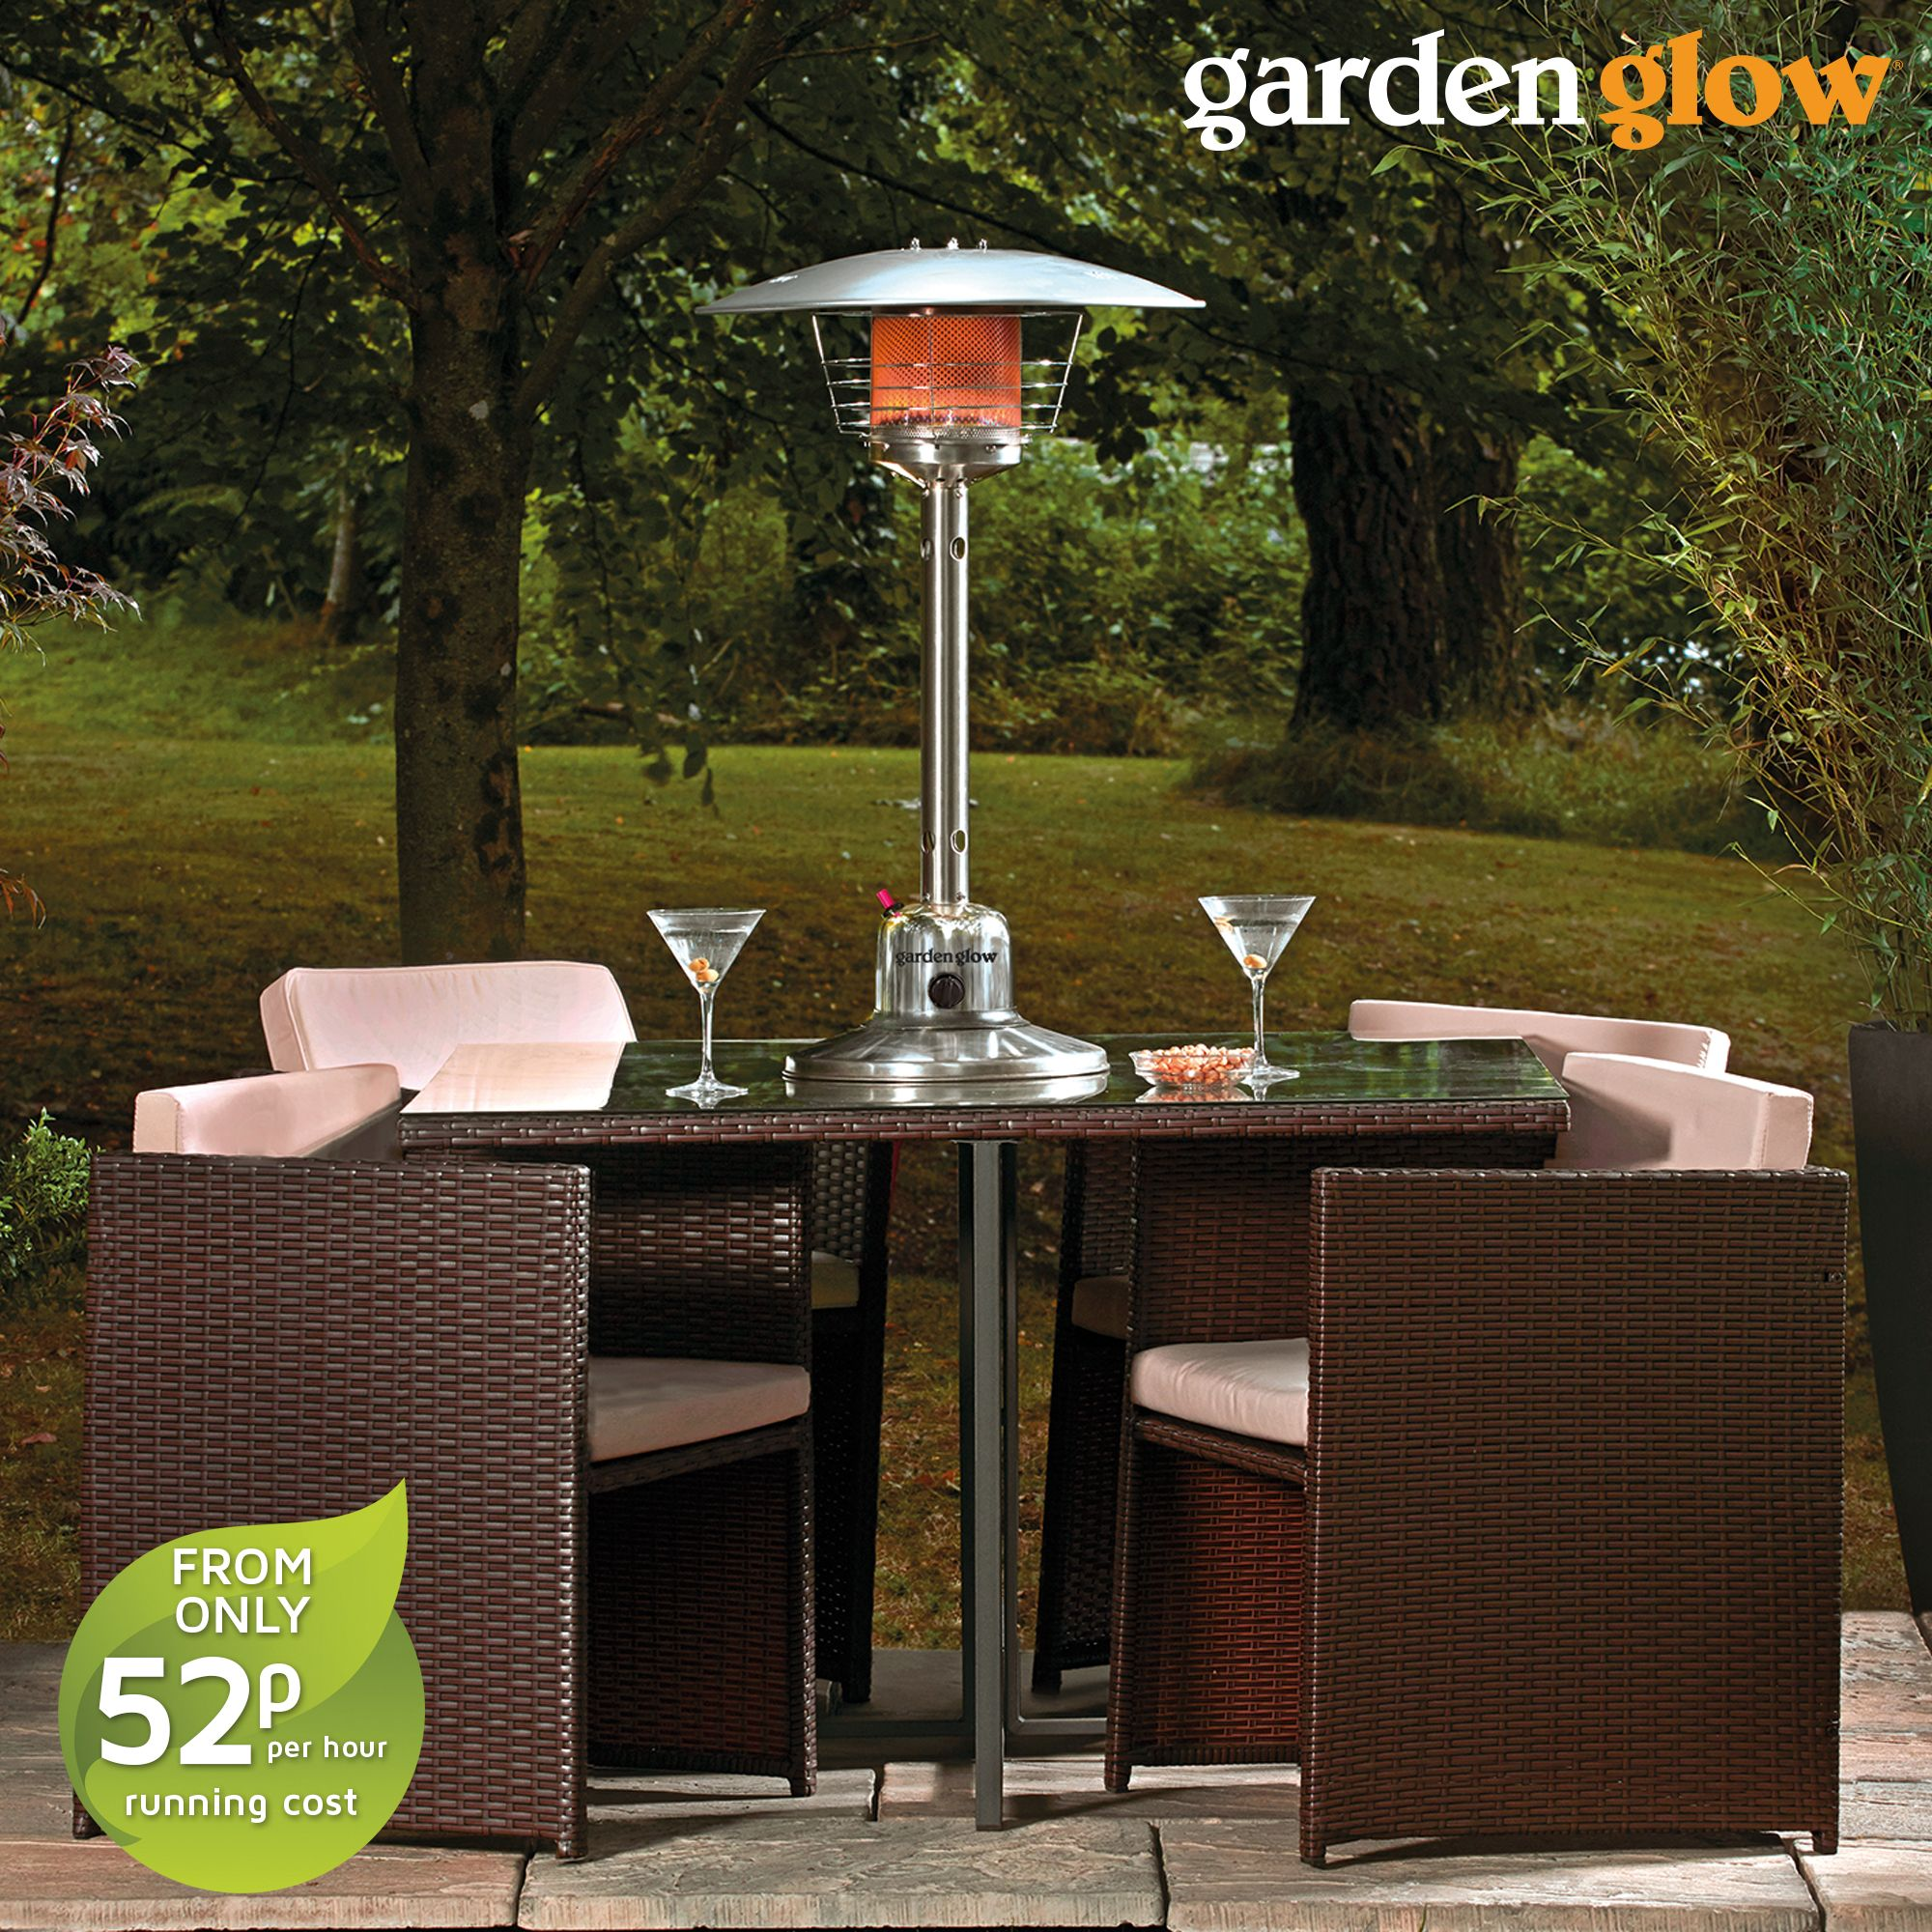 Pin by Matthew Glover on House in 2020 Gas patio heater